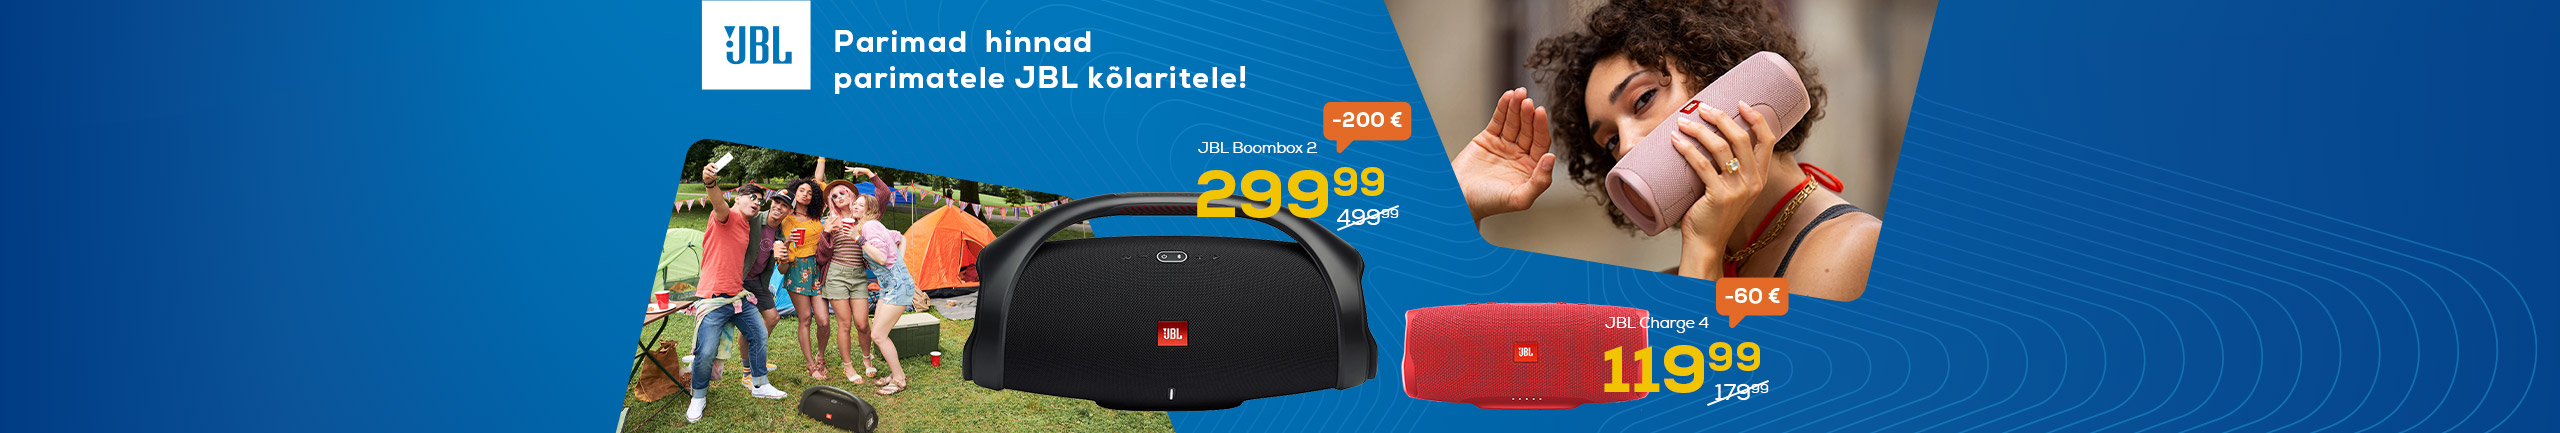 Best prices for the best JBL speakers!